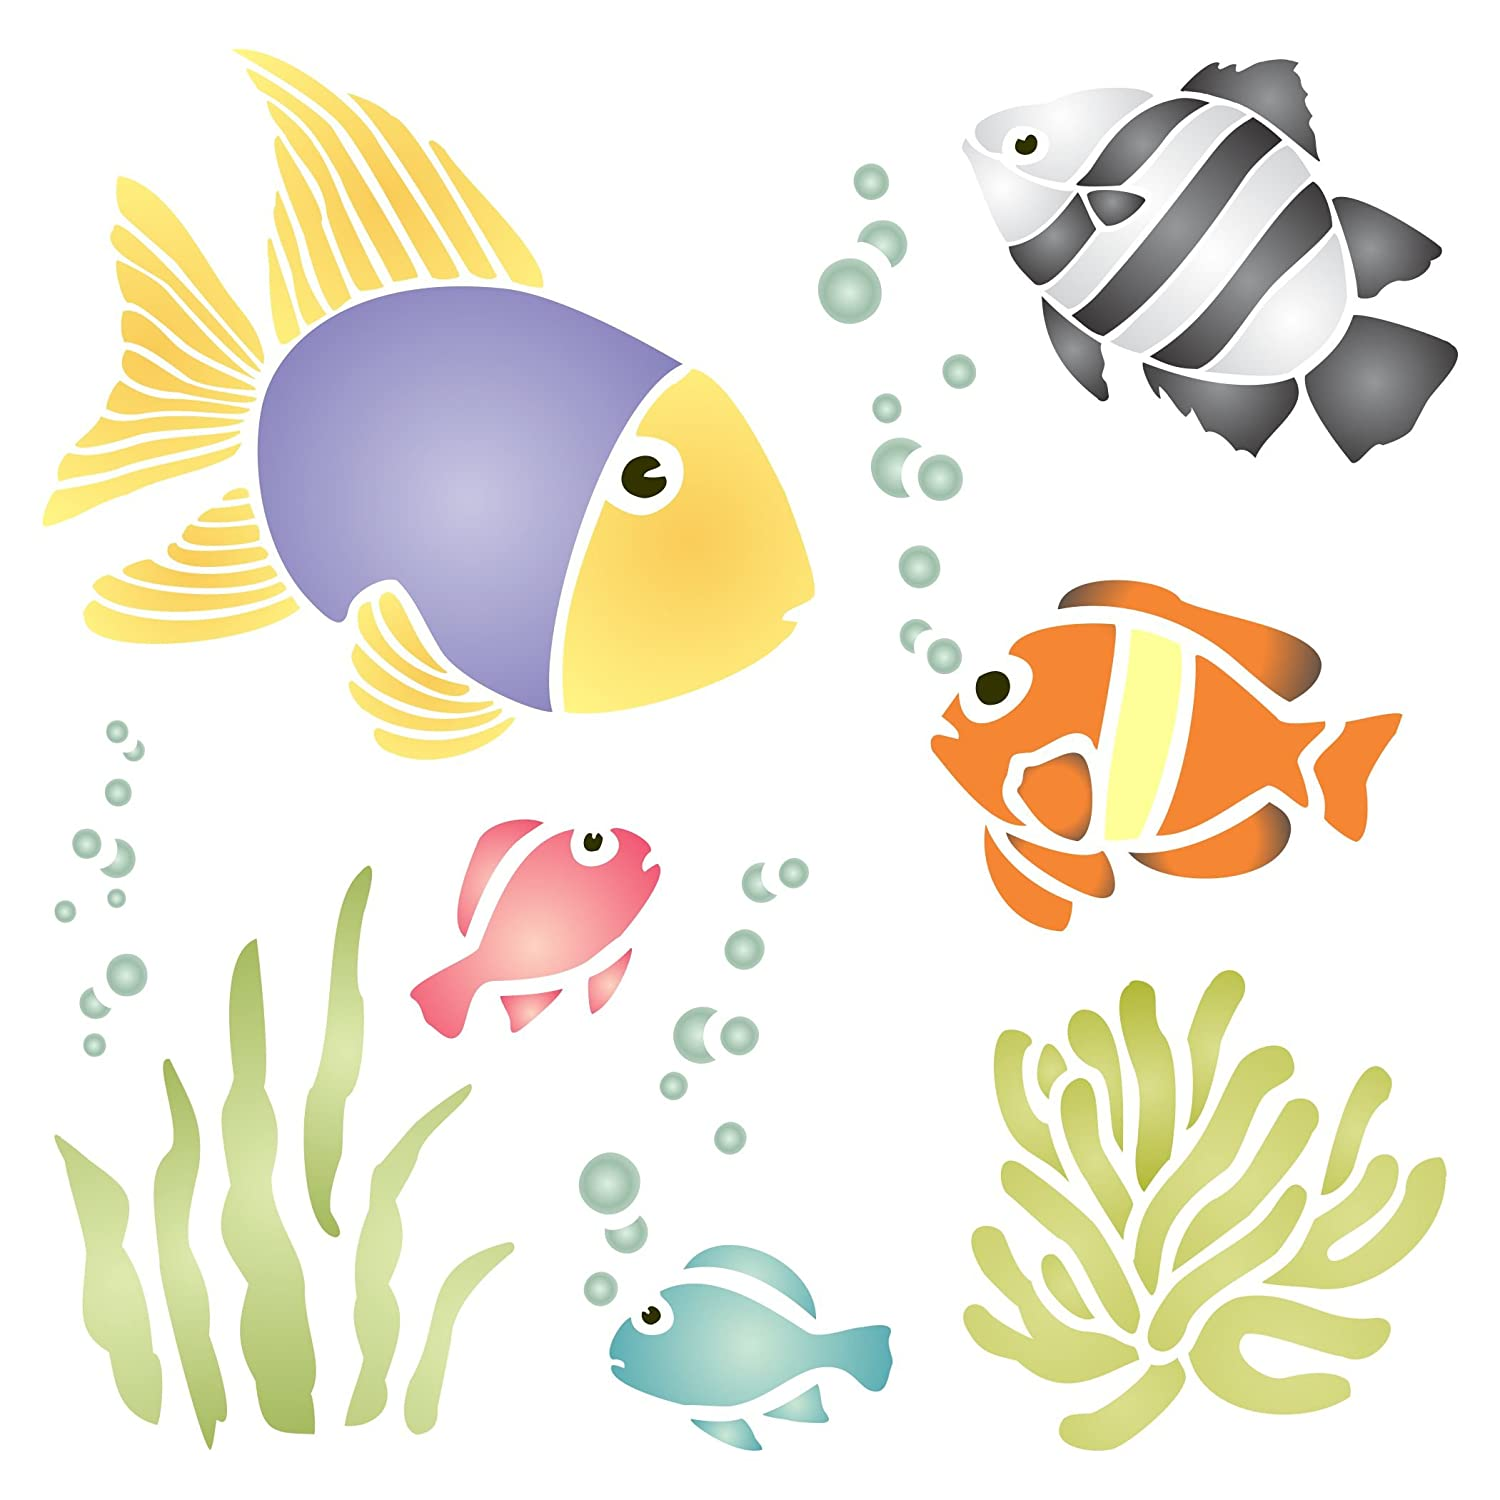 Amazon tropical fish stencil size 7w x 7h reusable amazon tropical fish stencil size 7w x 7h reusable stencils for painting best quality scrapbooking wall art dcor ideas use on walls floors amipublicfo Gallery